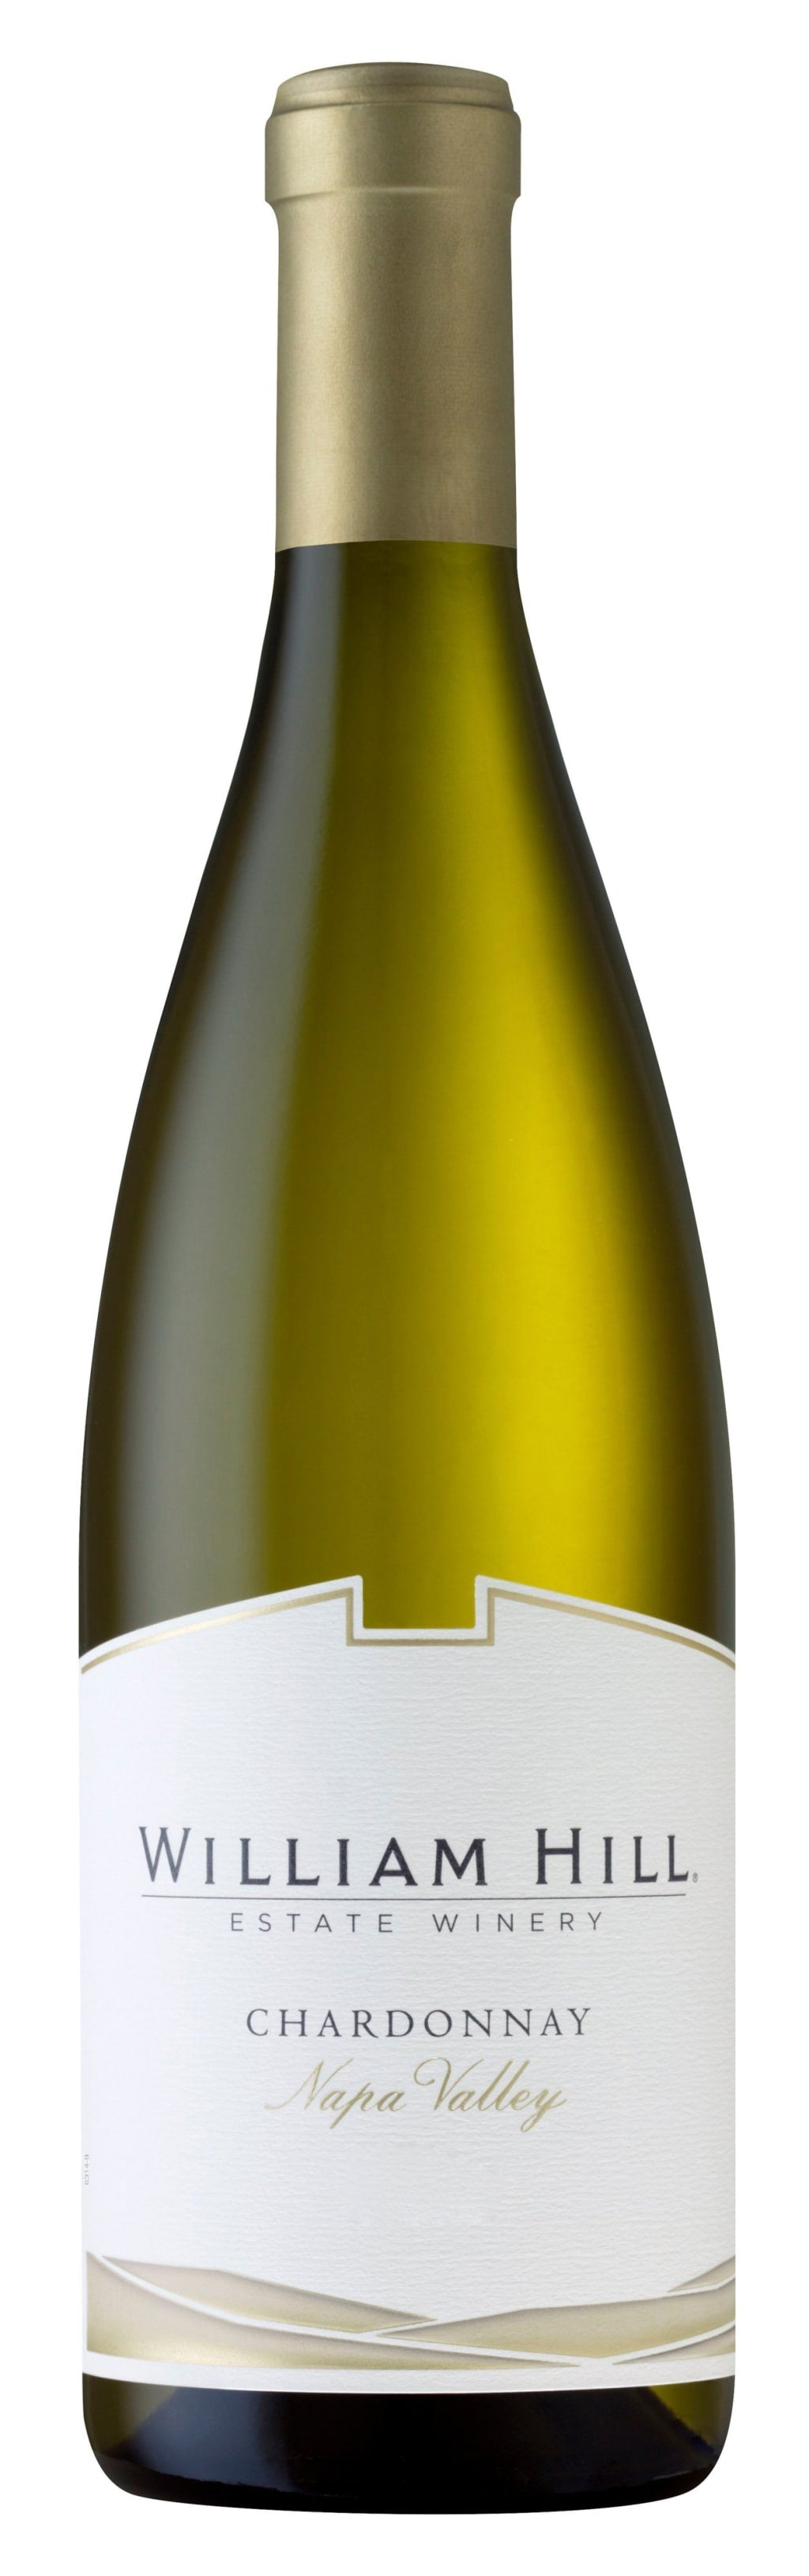 William Hill Chardonnay Napa Valley 2018